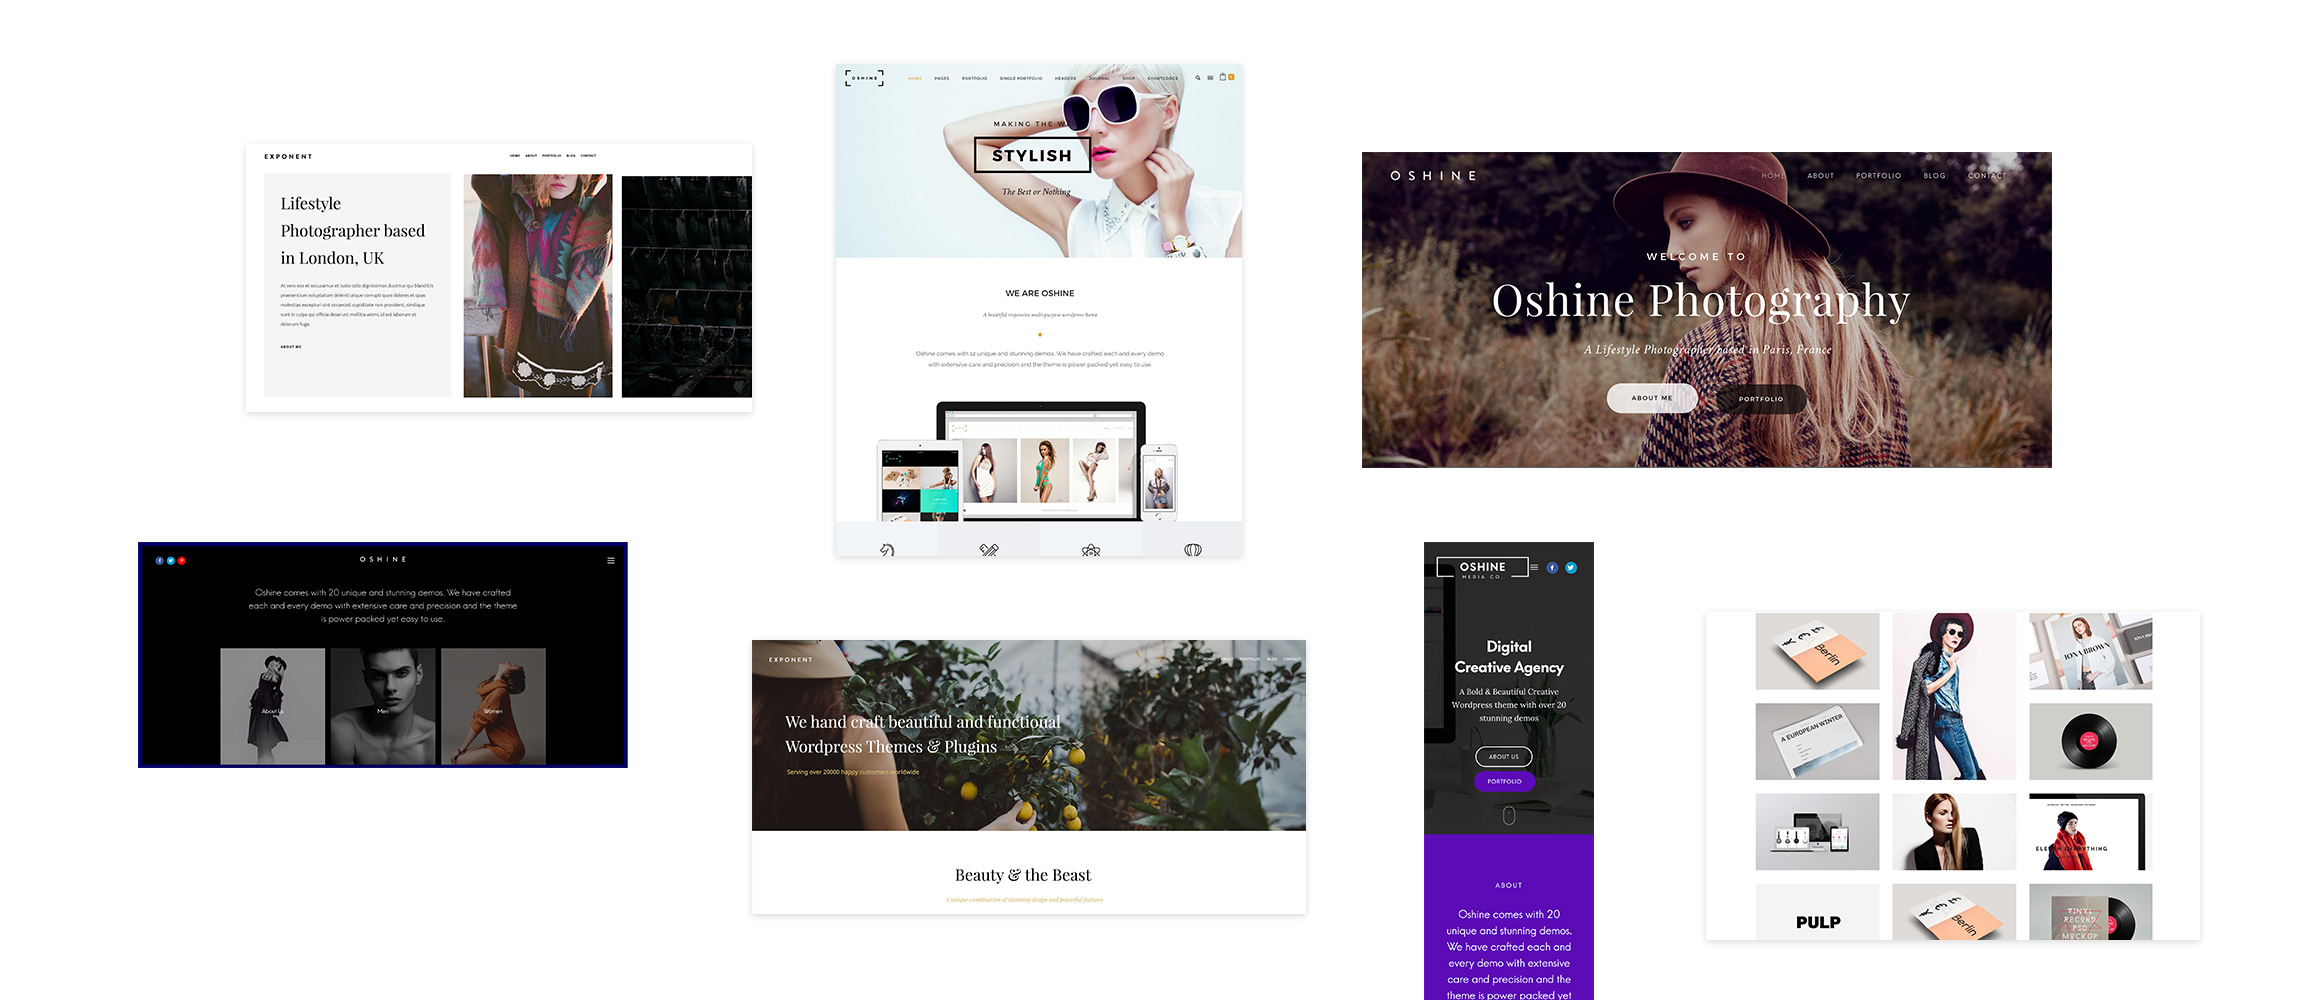 be-website-collage@2x